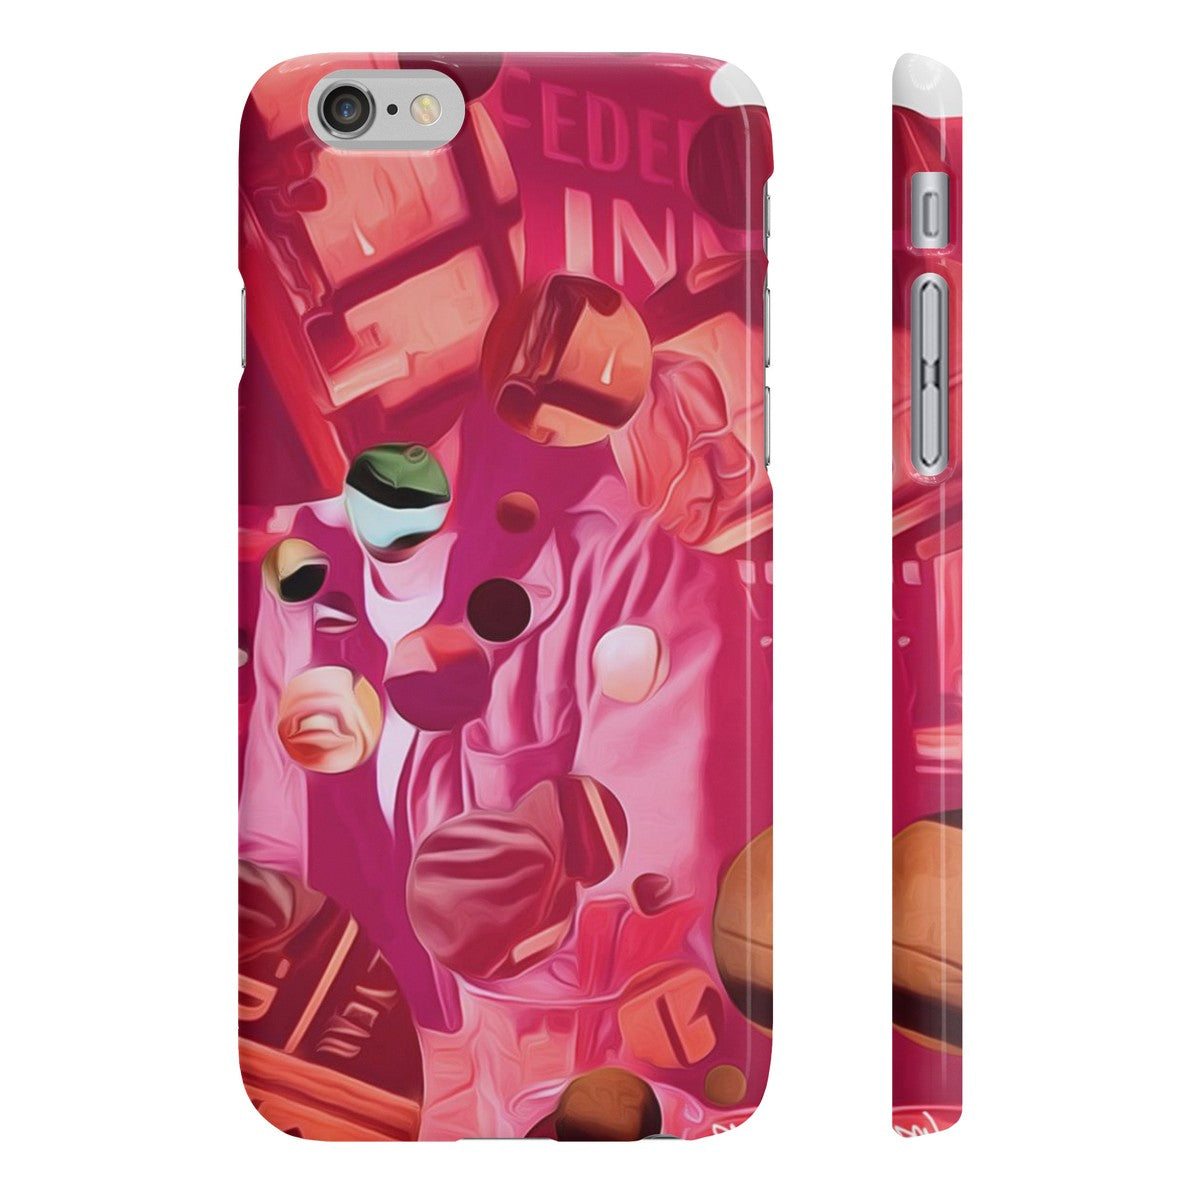 """SURREAL ART"" SLIM PHONE CASE"